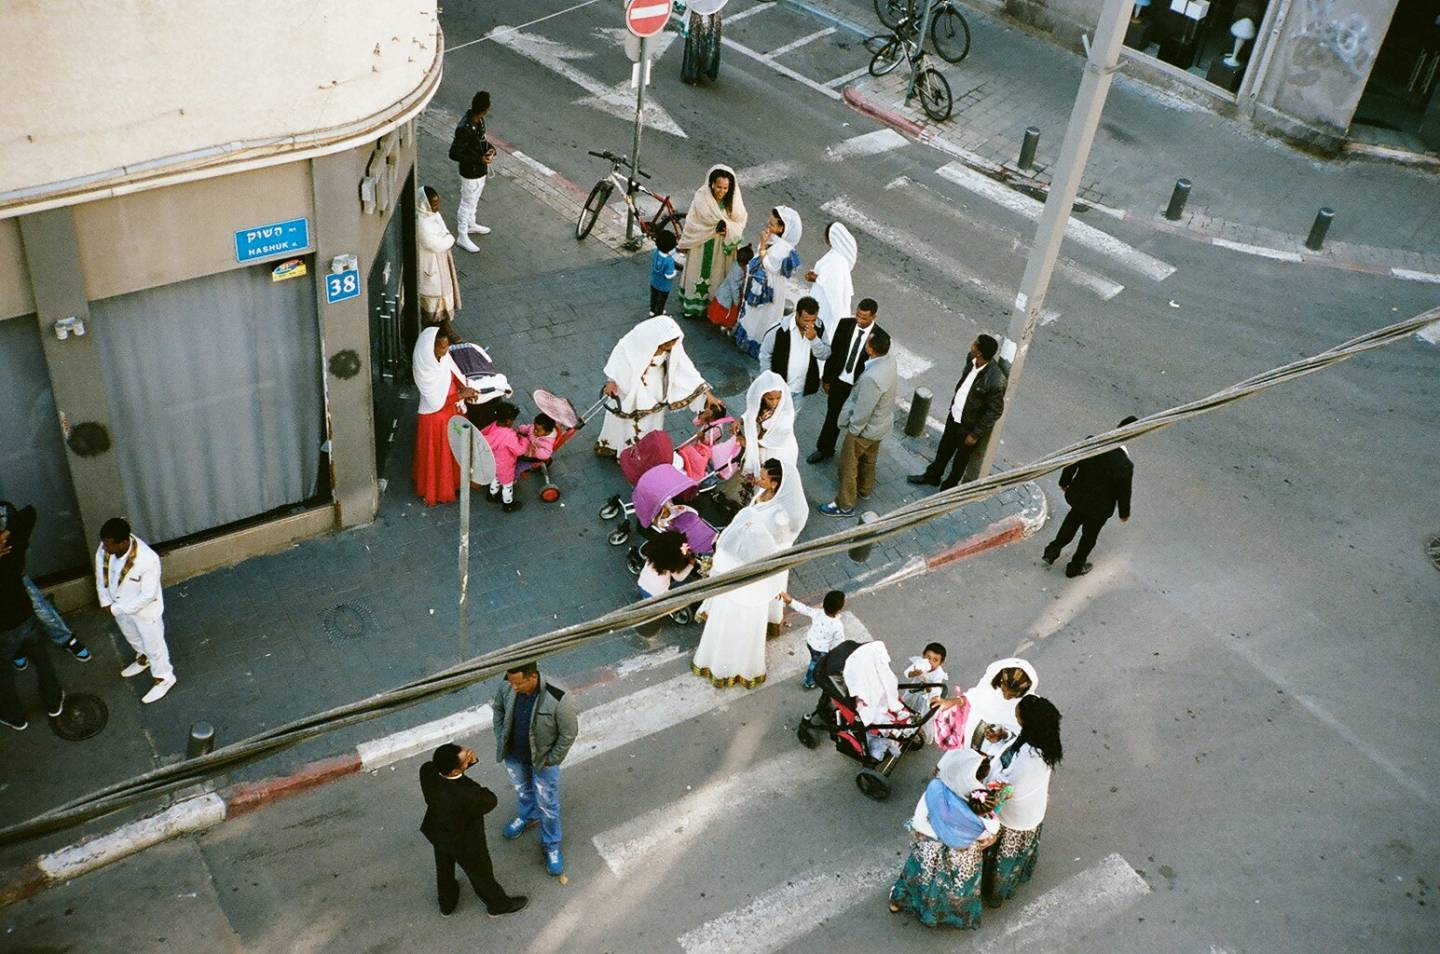 Lindsay Interview | Caught on Film: Jill Schweber Documents a Modern Tel Aviv